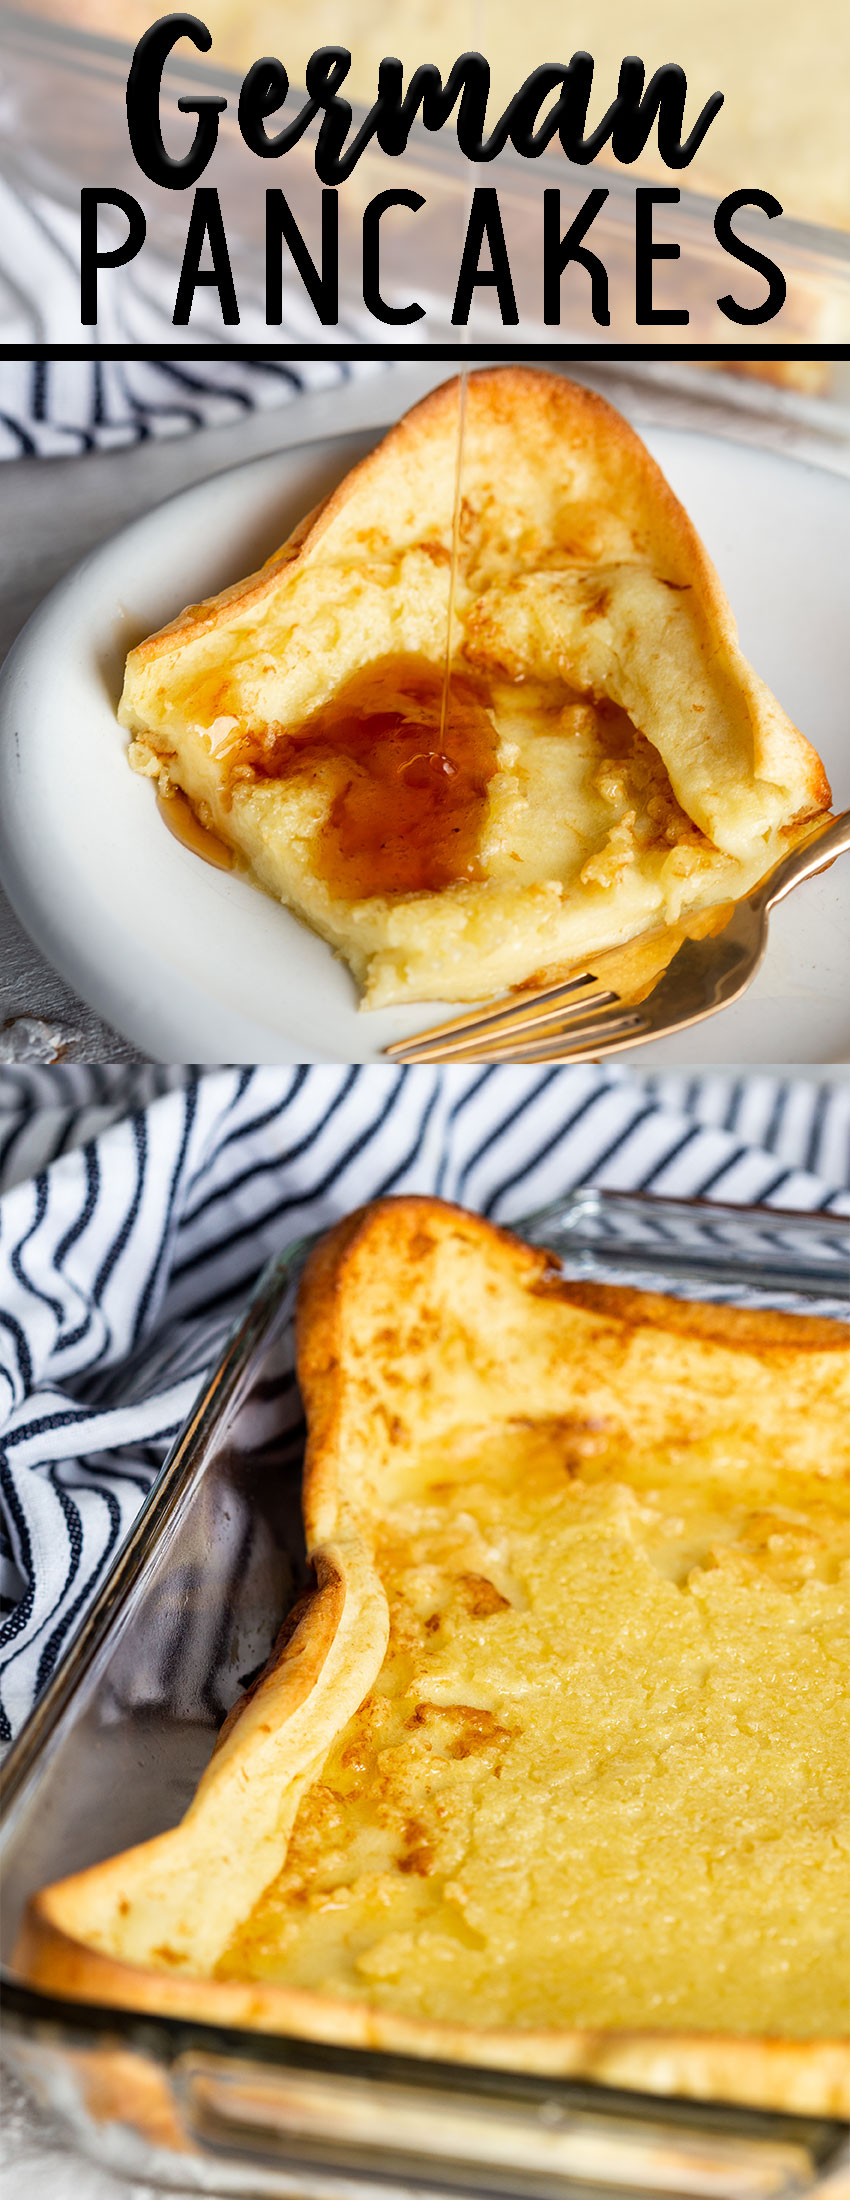 German Pacakes or dutch babies, or puff pancakes that are a batter that is mixed up, and baked in the oven.